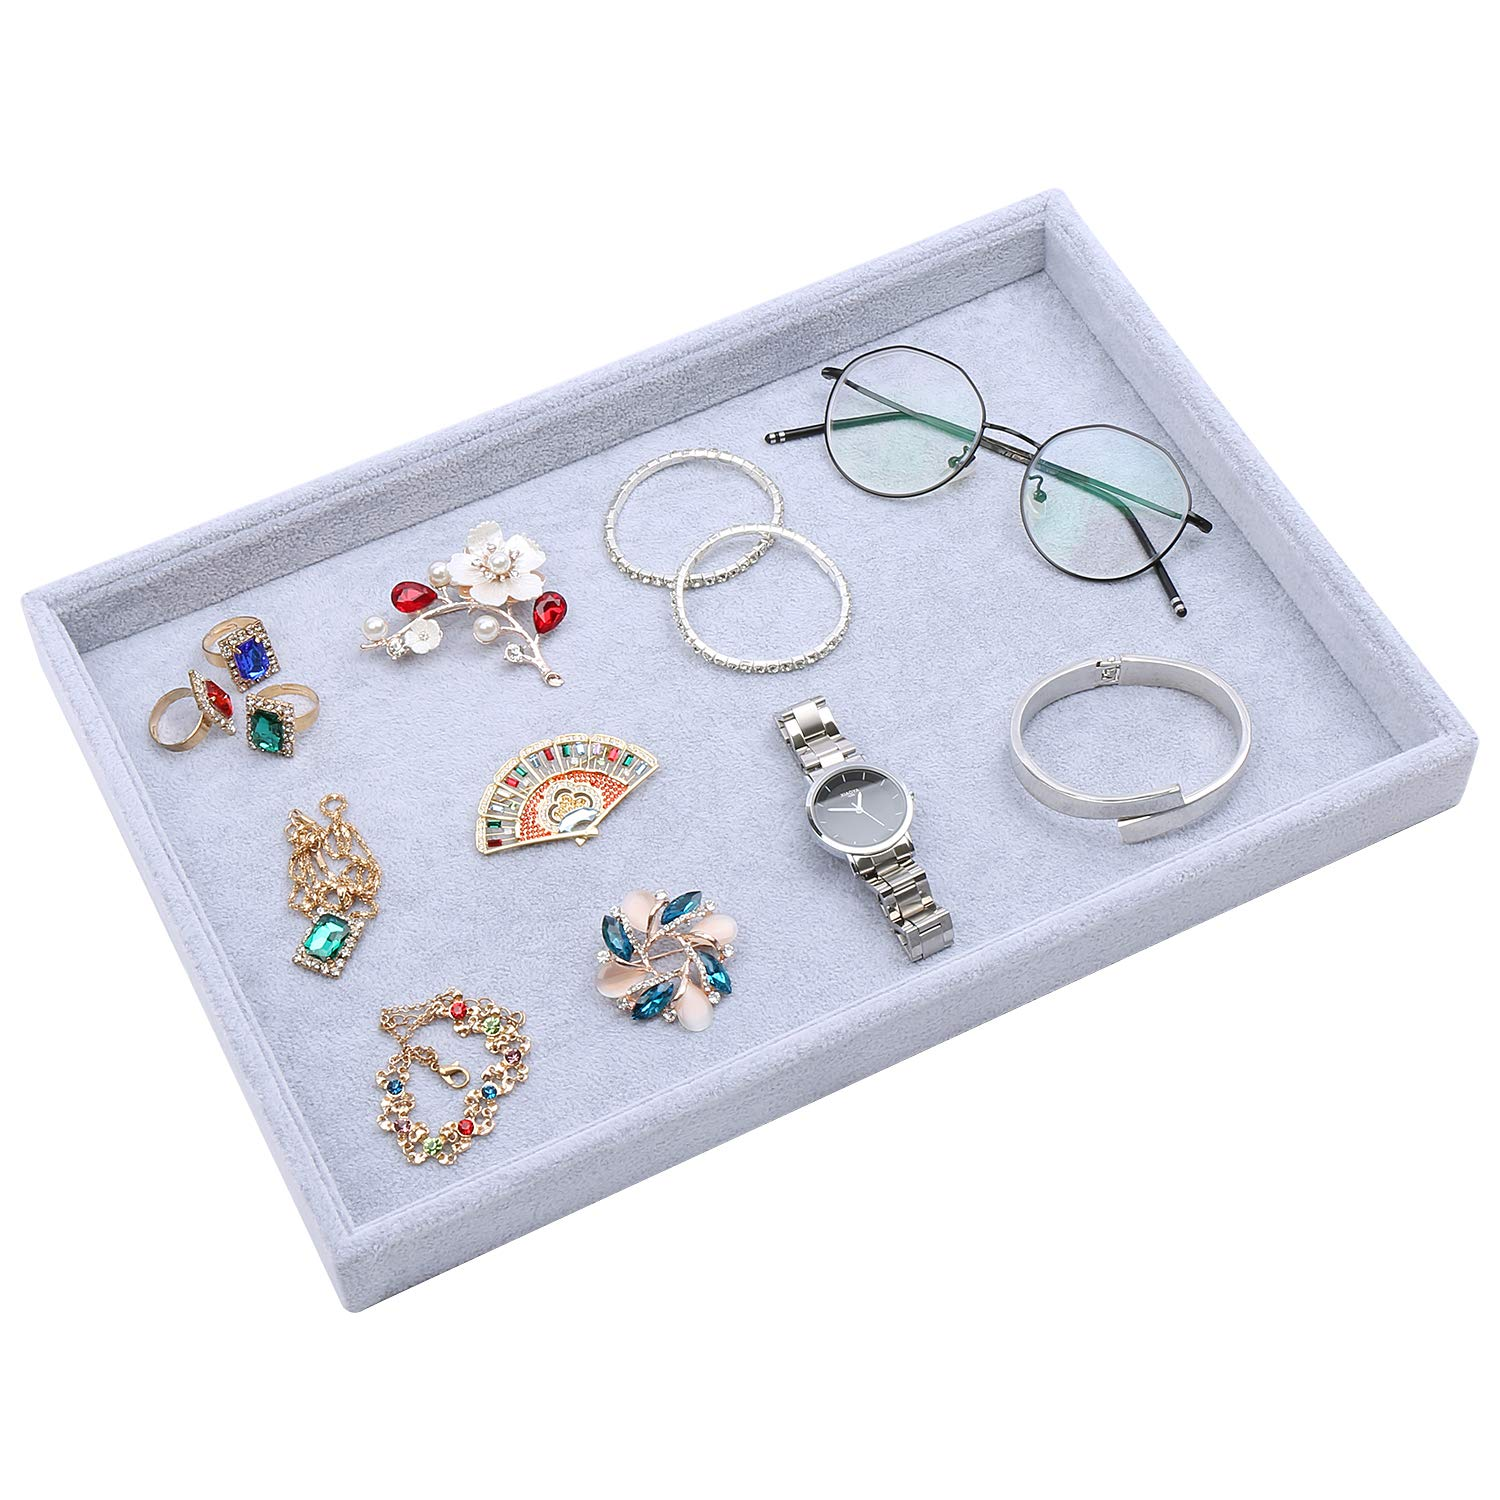 Velvet Jewelry Tray Stackable for Rings Earrings Necklaces Watches Buttons